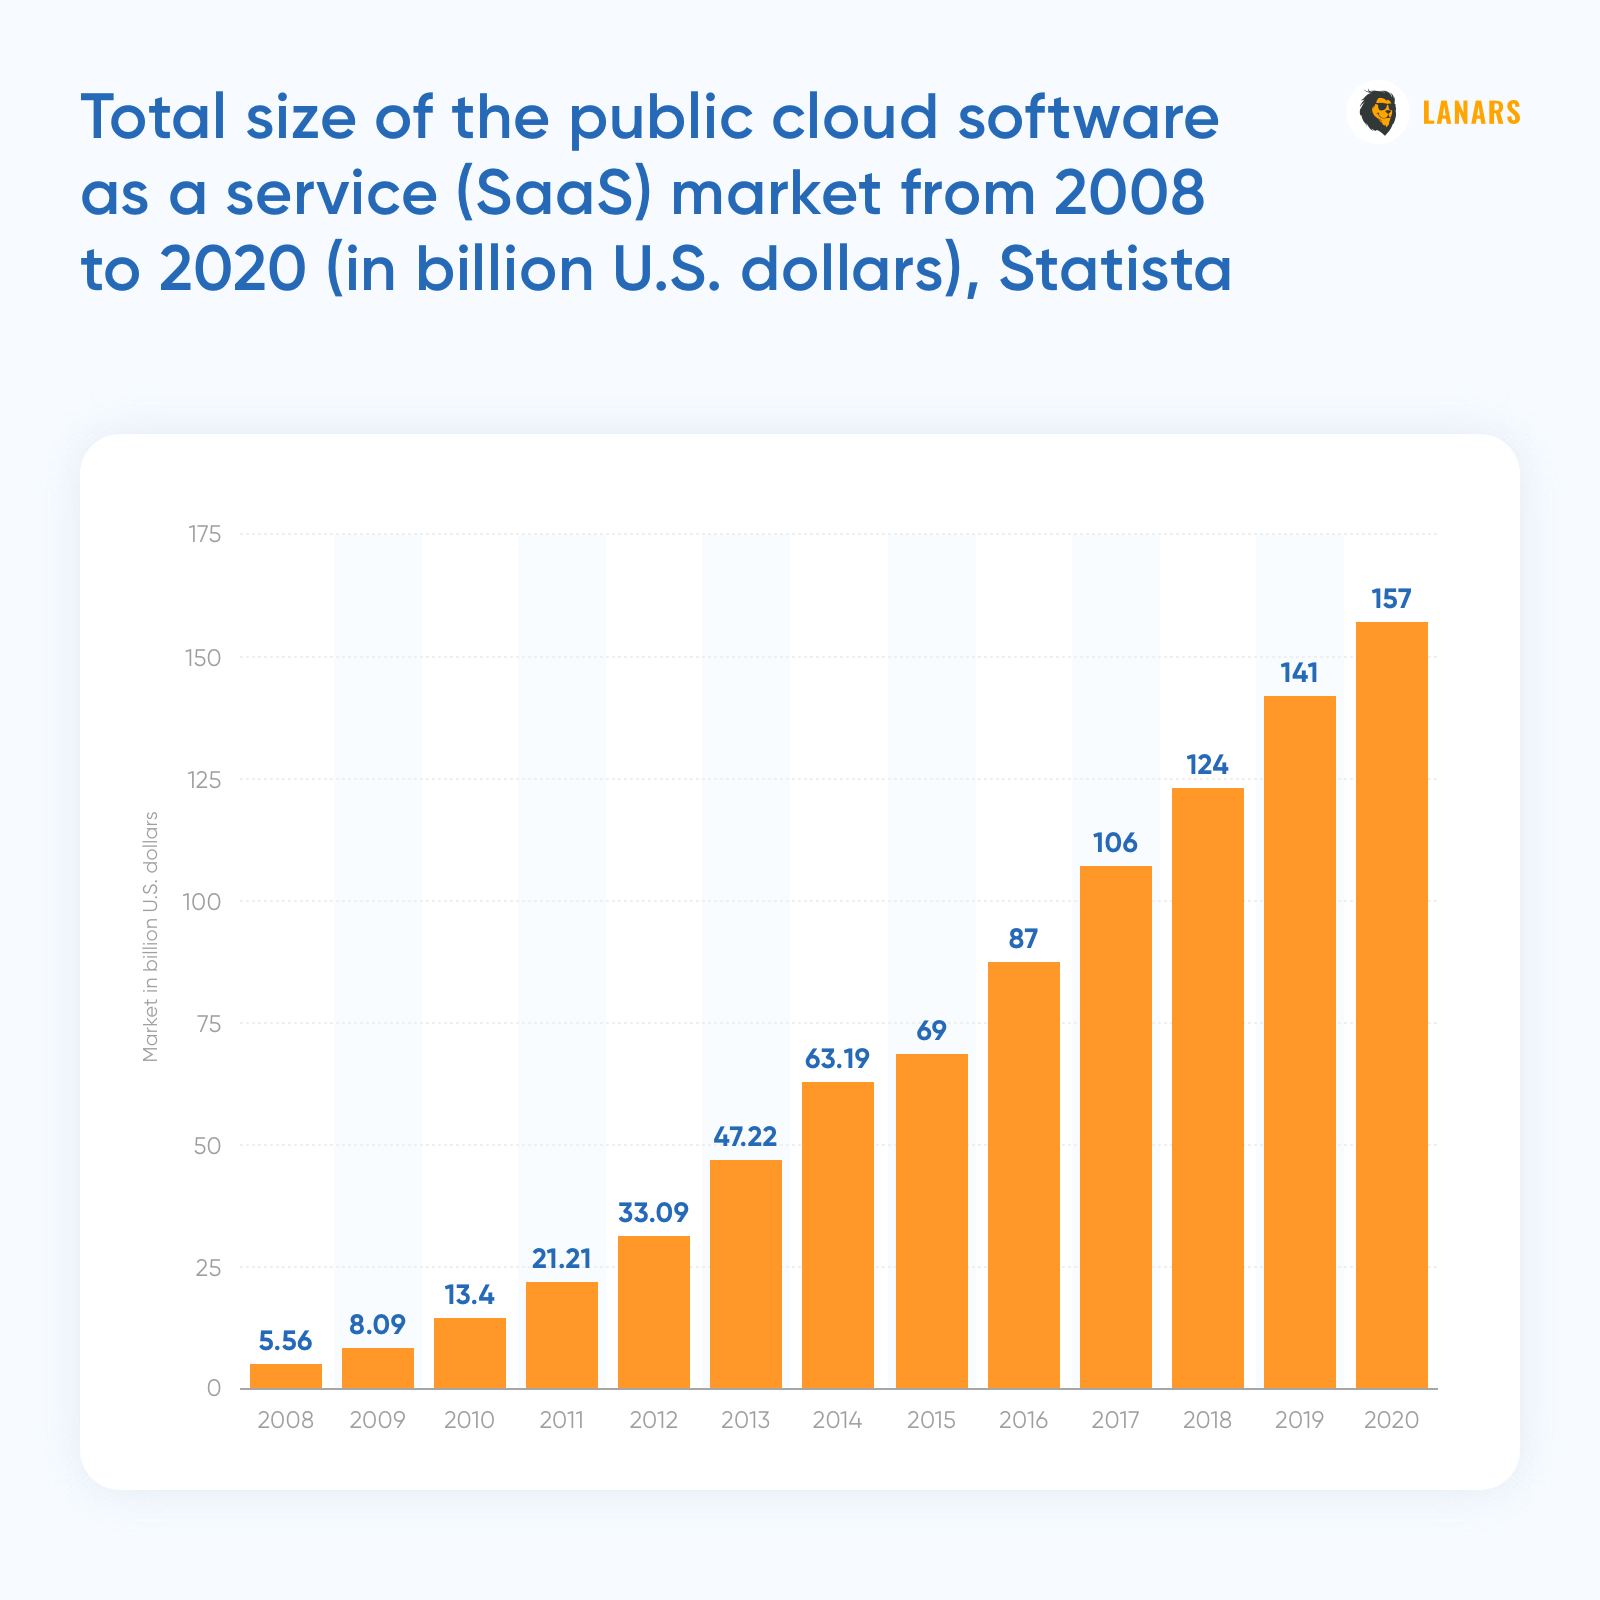 Total size of the public cloud software as a service (SaaS) market from 2008 to 2020 (in billion U.S. dollars), Statista